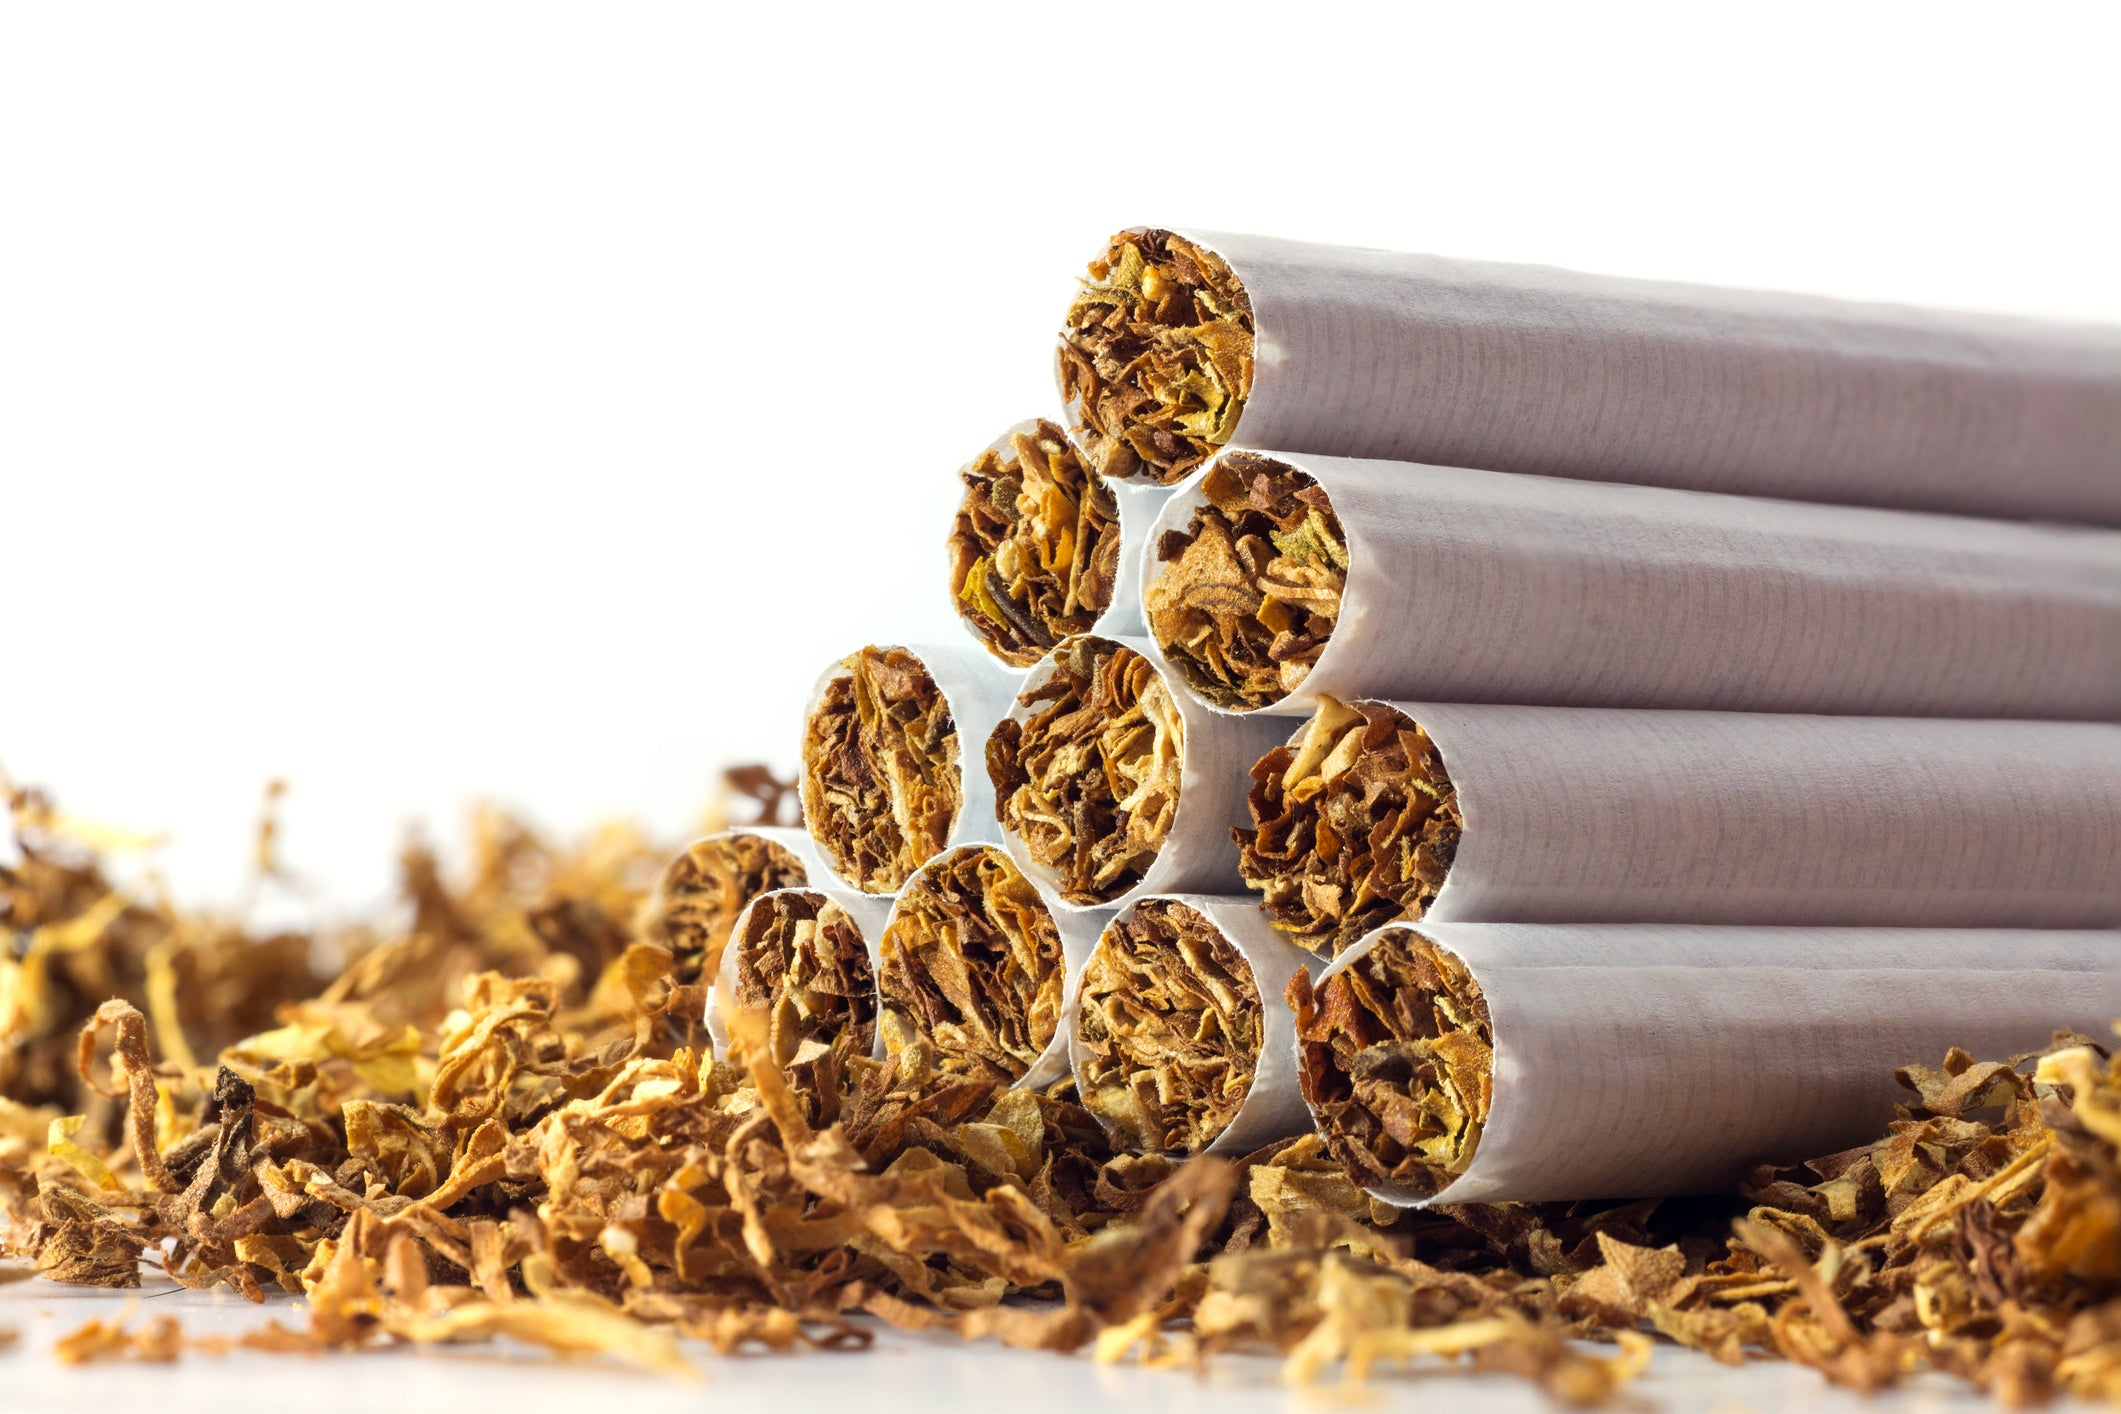 A pyramid of tobacco cigarettes sitting on a bed of dried tobacco.